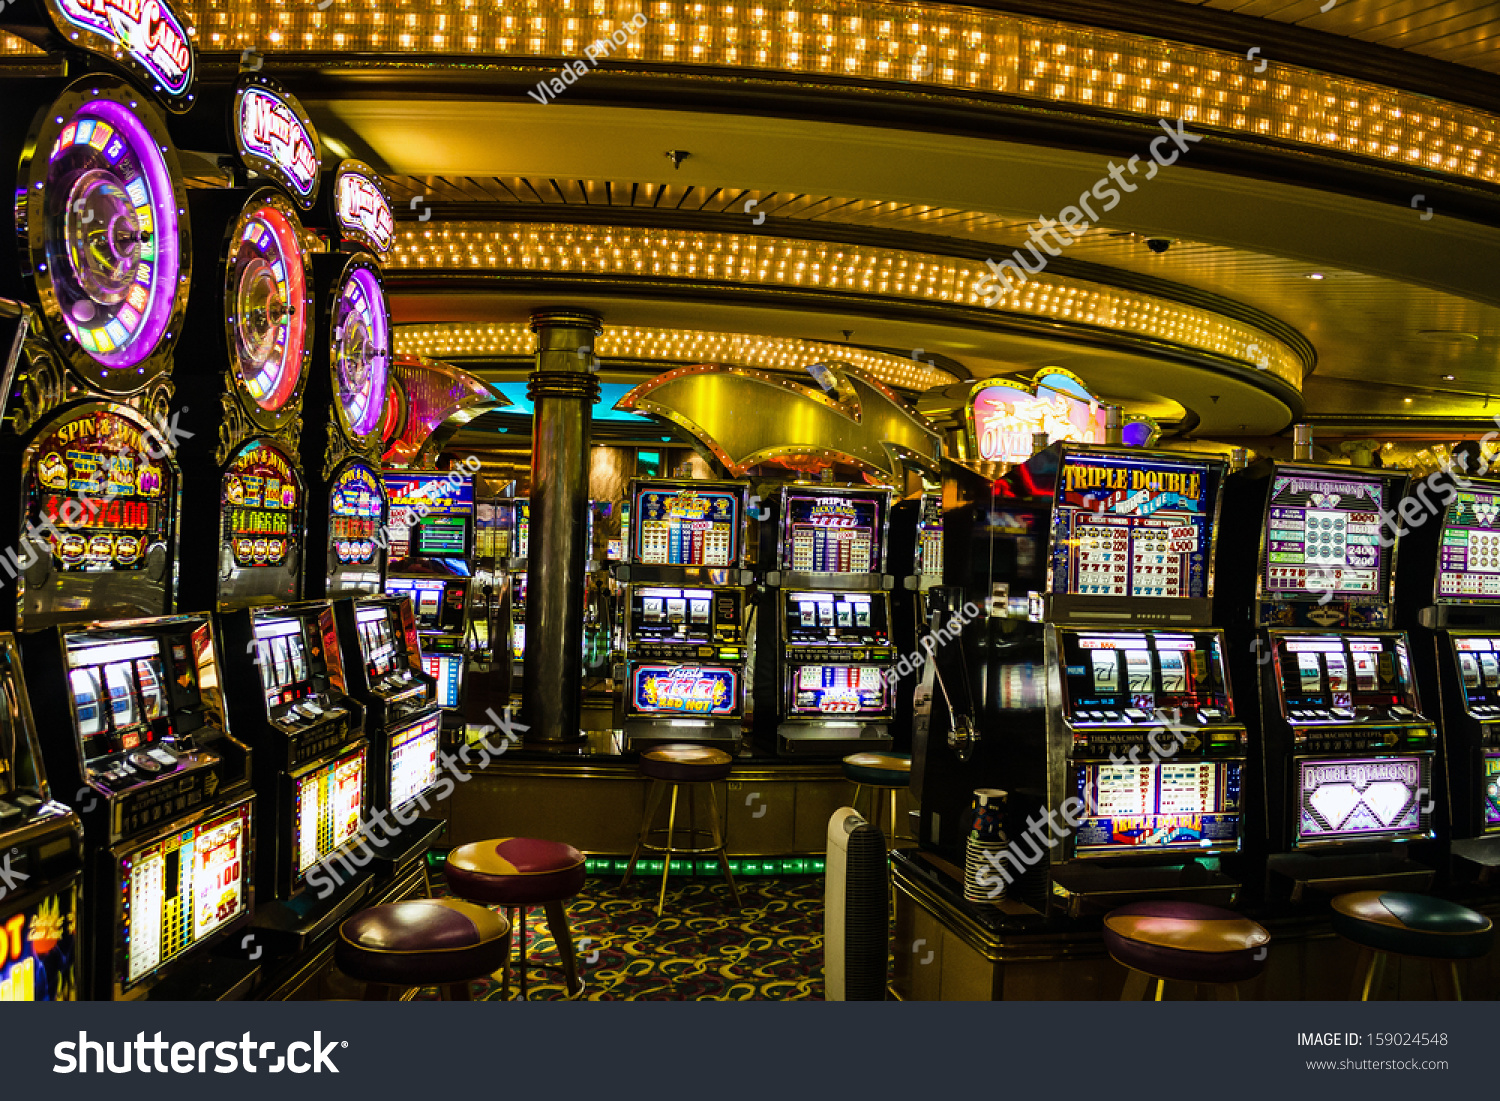 video gambling slot machines